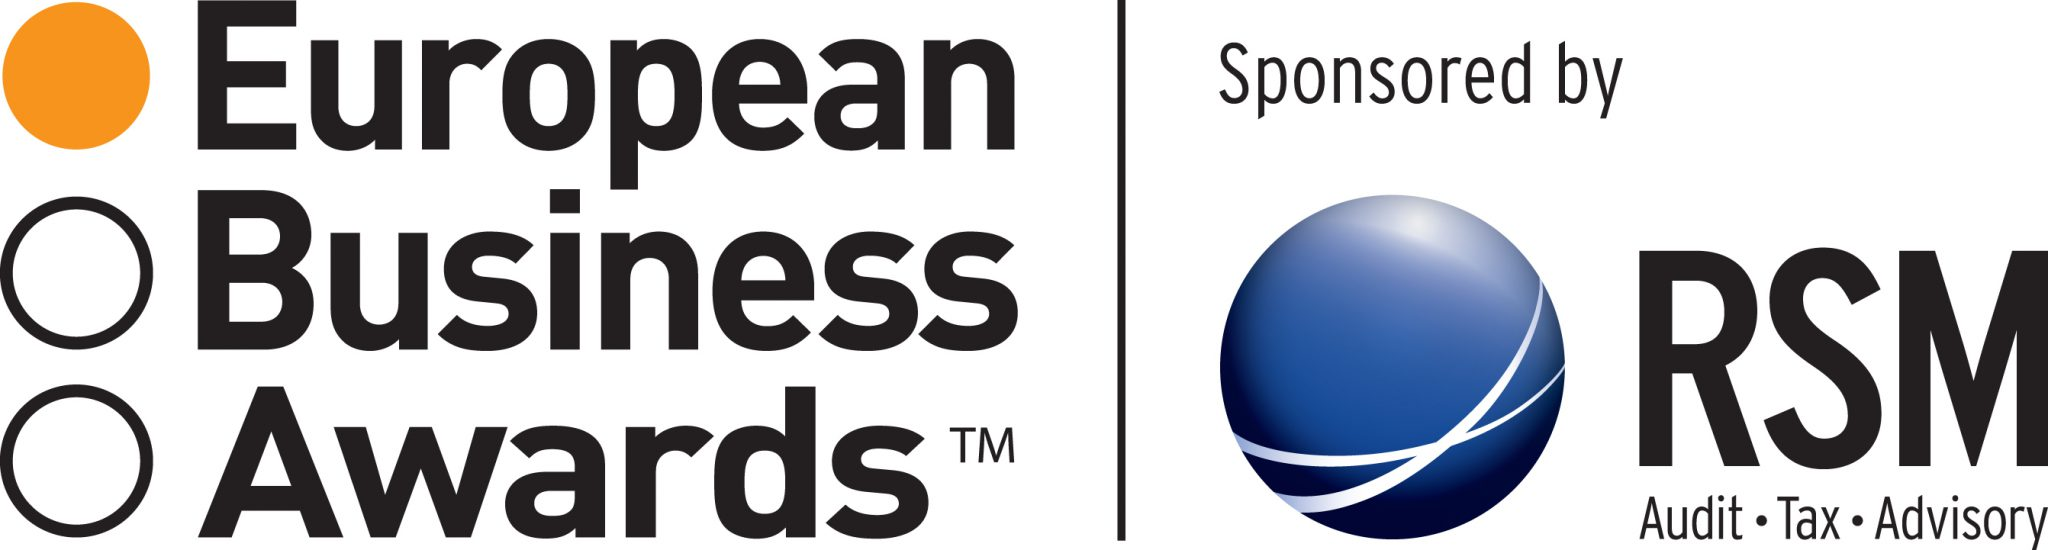 European Business Awards Logo